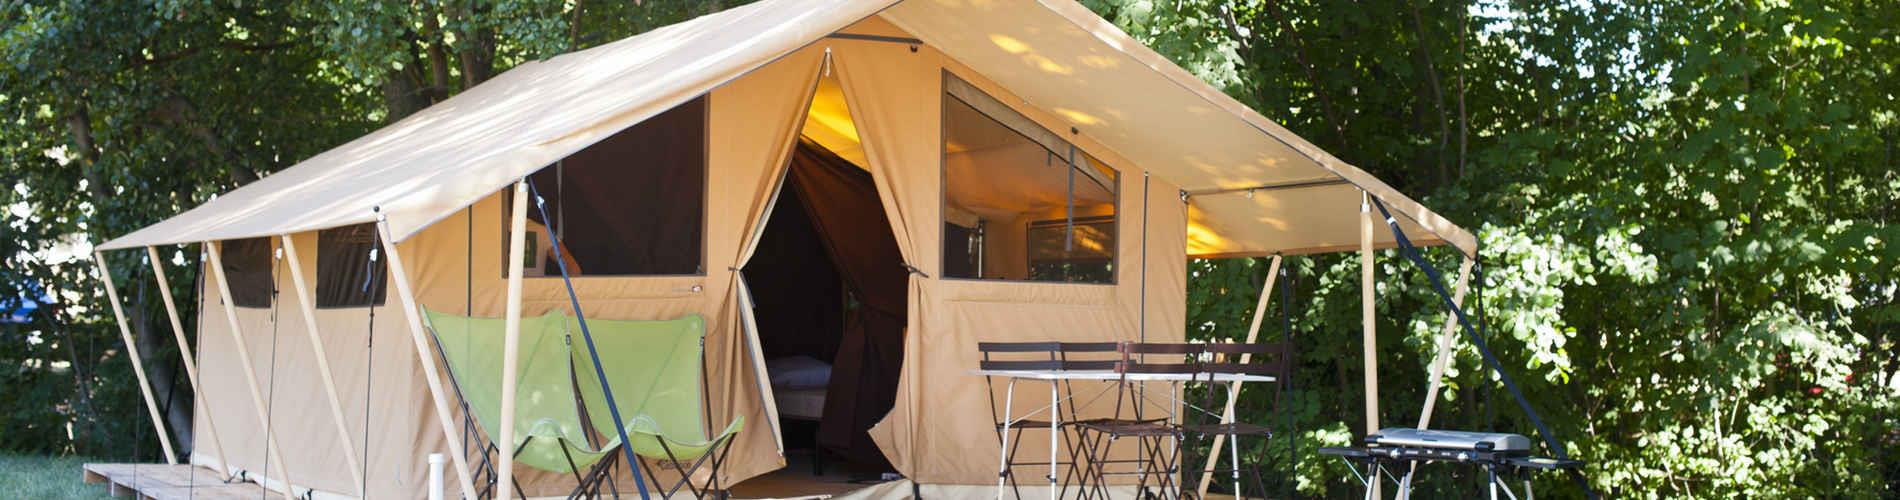 Rental - Tent Family - Camping Huttopia Gorges du Tarn